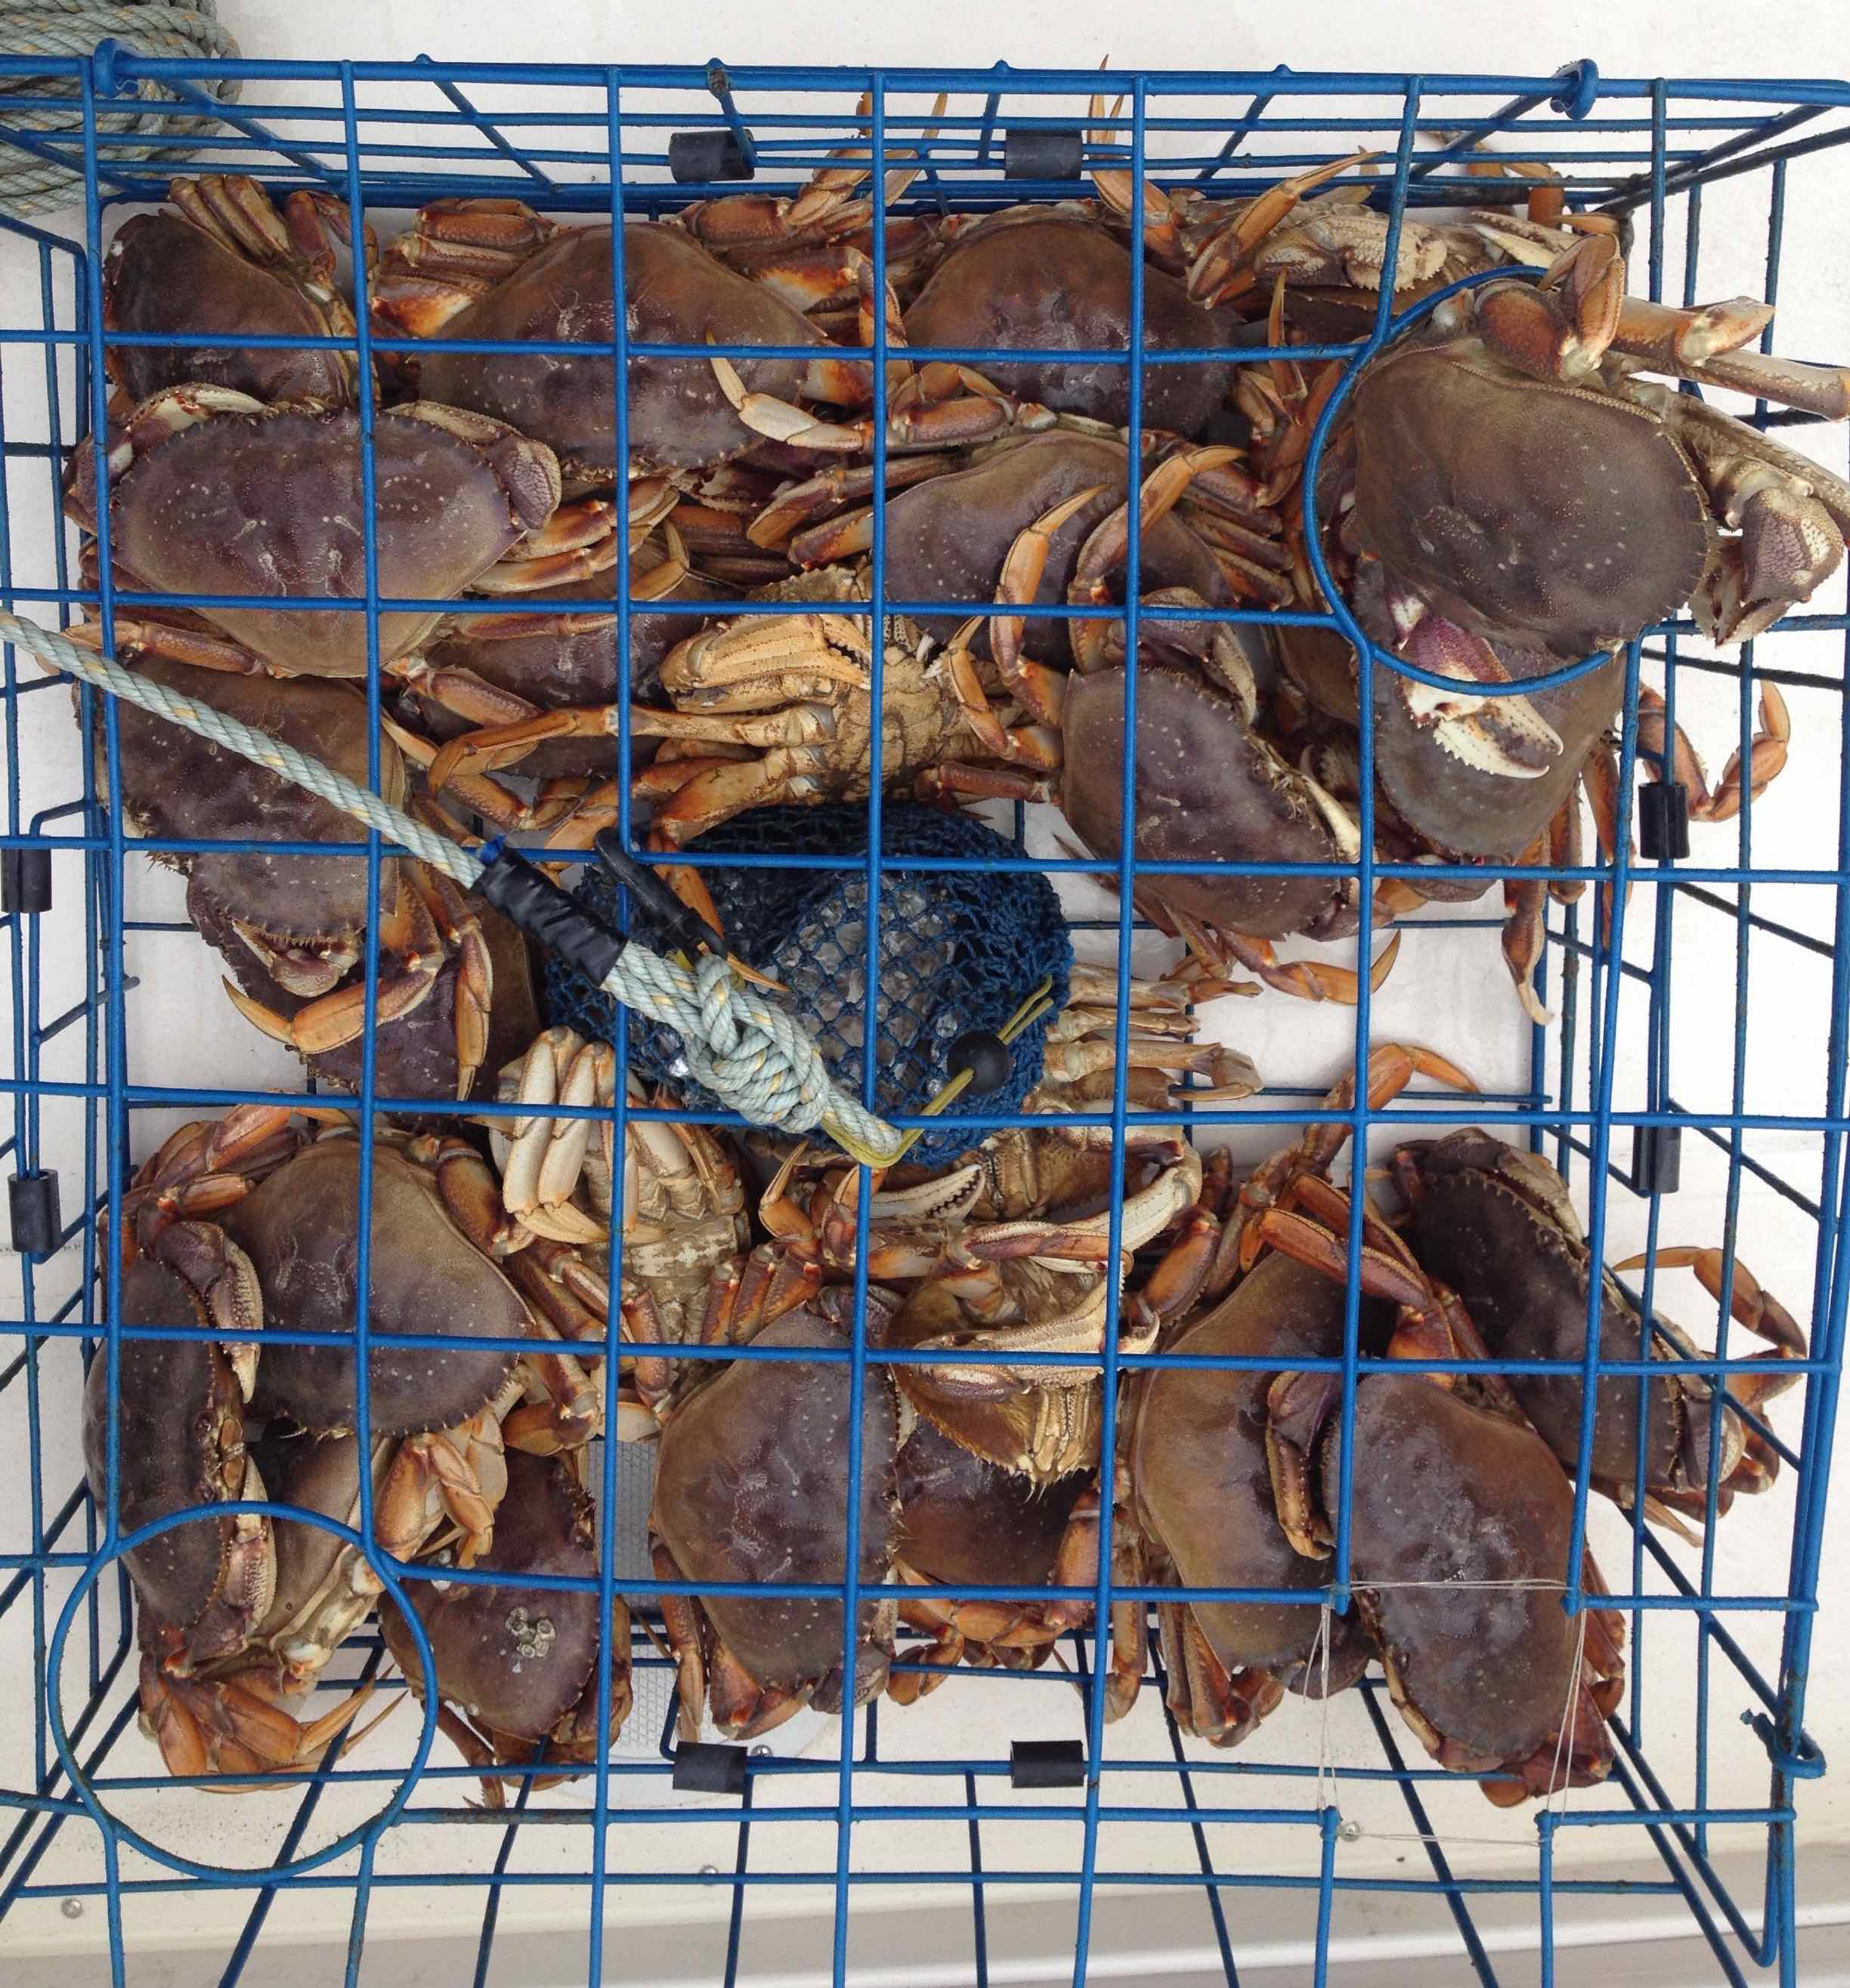 EM crab fishing reduced